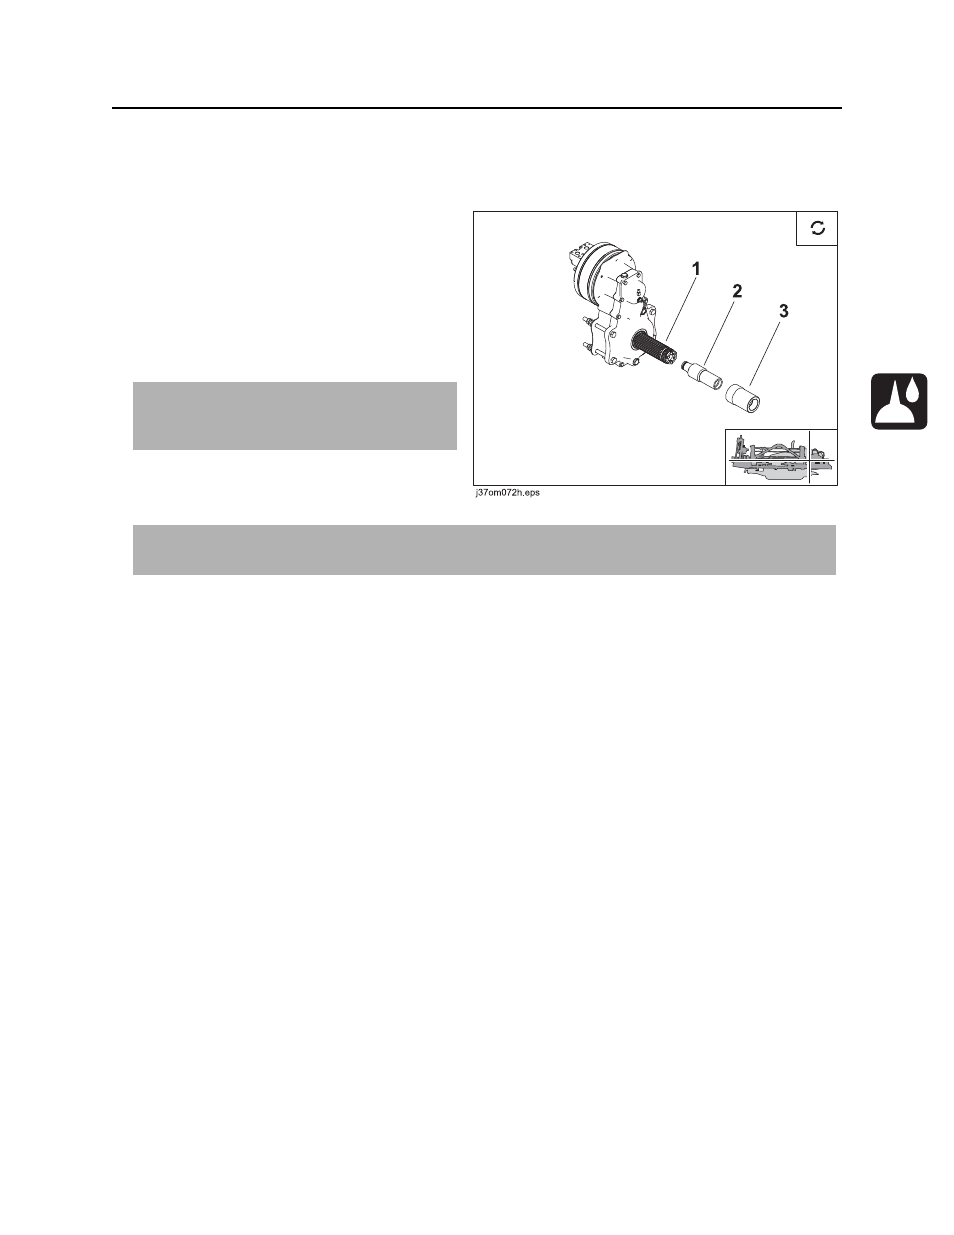 Jt25 operator's manual | Ditch Witch JT25 User Manual | Page 192 / on ditch witch drill, ditch witch jt921, ditch witch at20, ditch witch at2020, ditch witch ht25 parts, ditch witch at rock drilling, ditch witch jt30, ditch witch of arkansas benton ar, ditch witch jt3020, ditch witch jt5, ditch witch jt60, ditch witch trencher head, ditch witch jt 20, ditch witch drilling rigs, ditch witch directional boring machine,